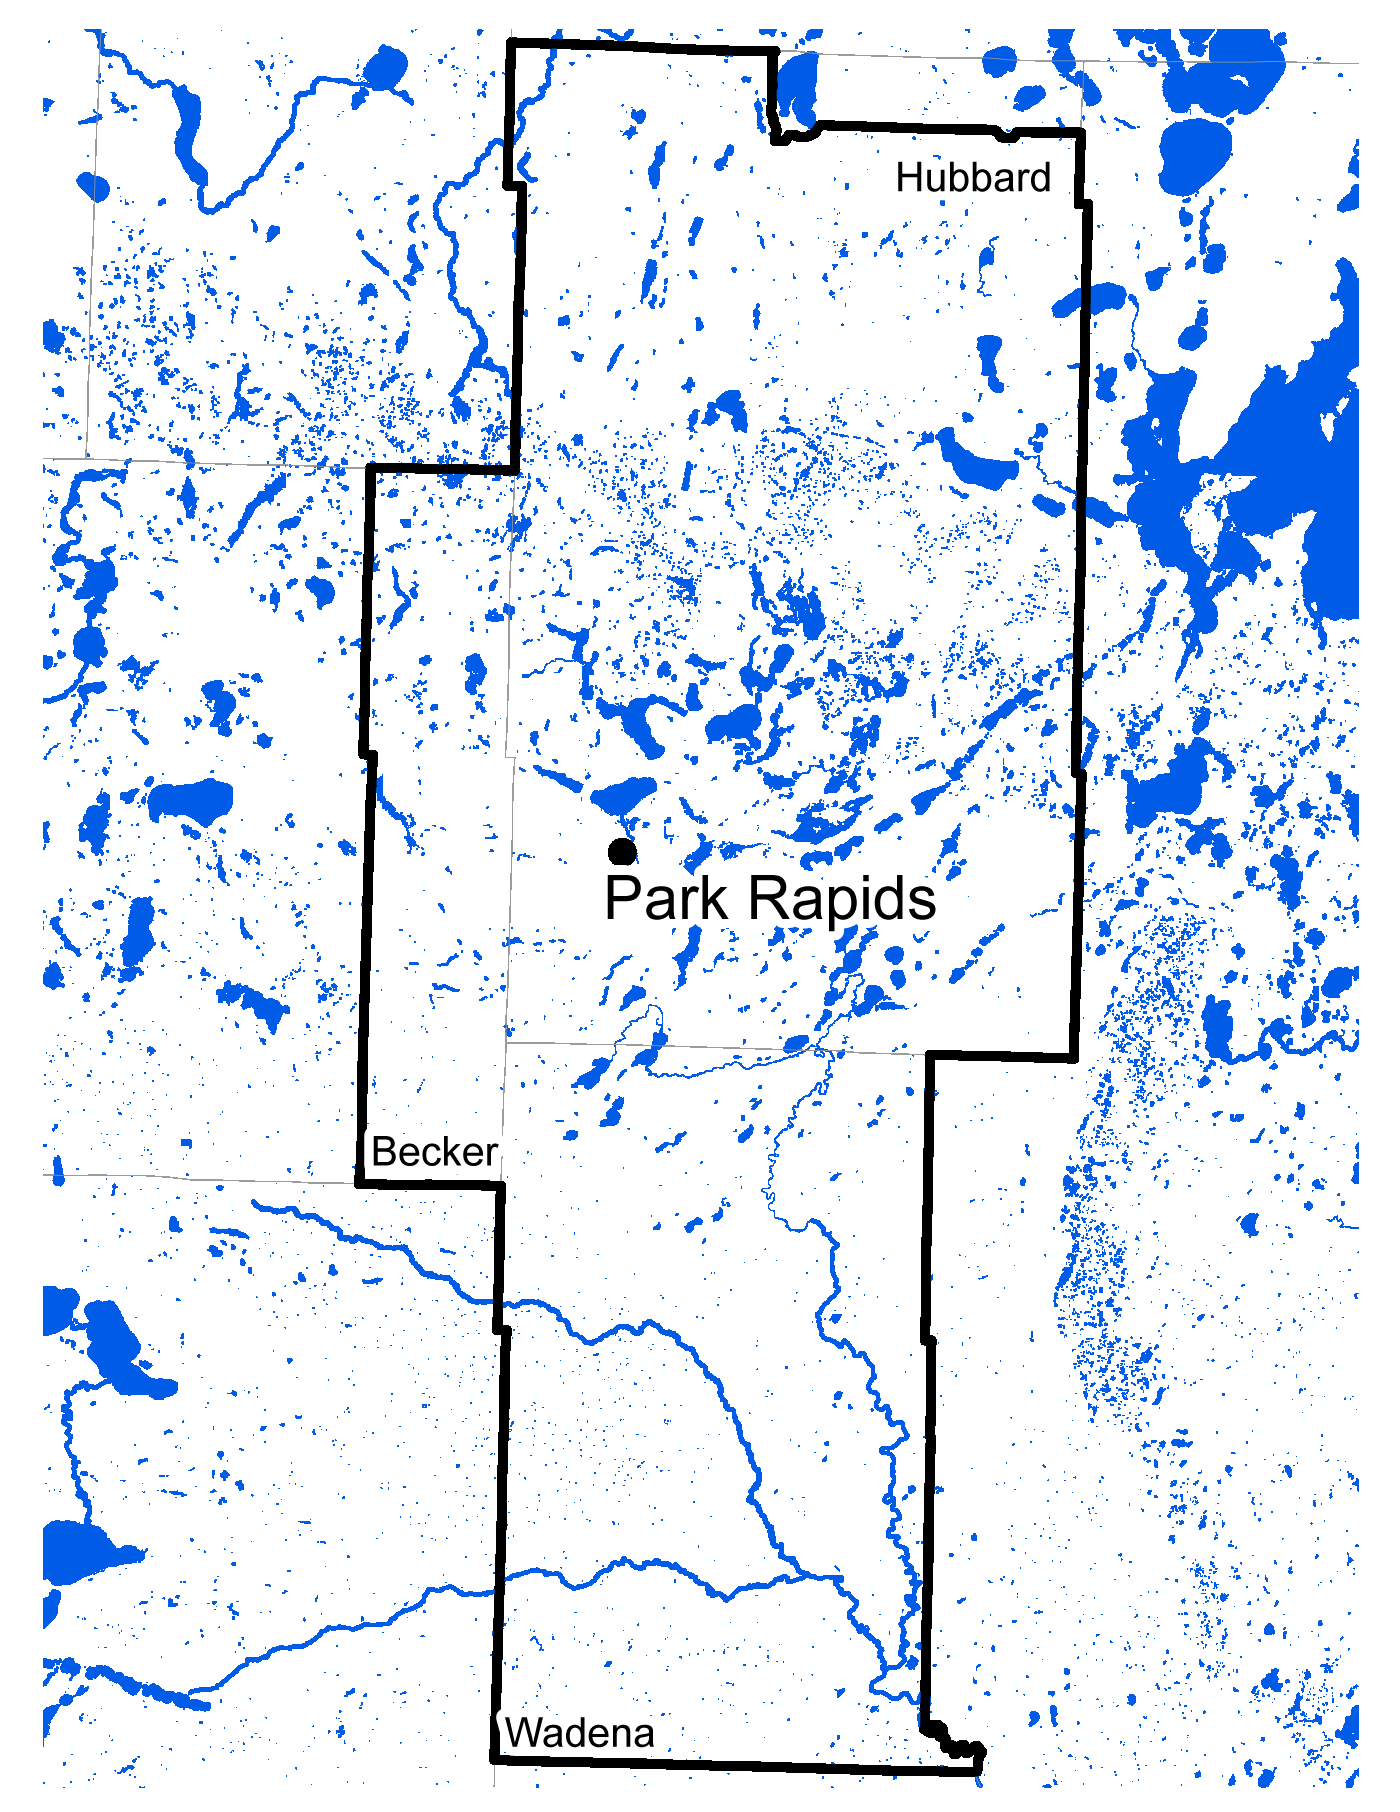 Map of Park Rapids work area